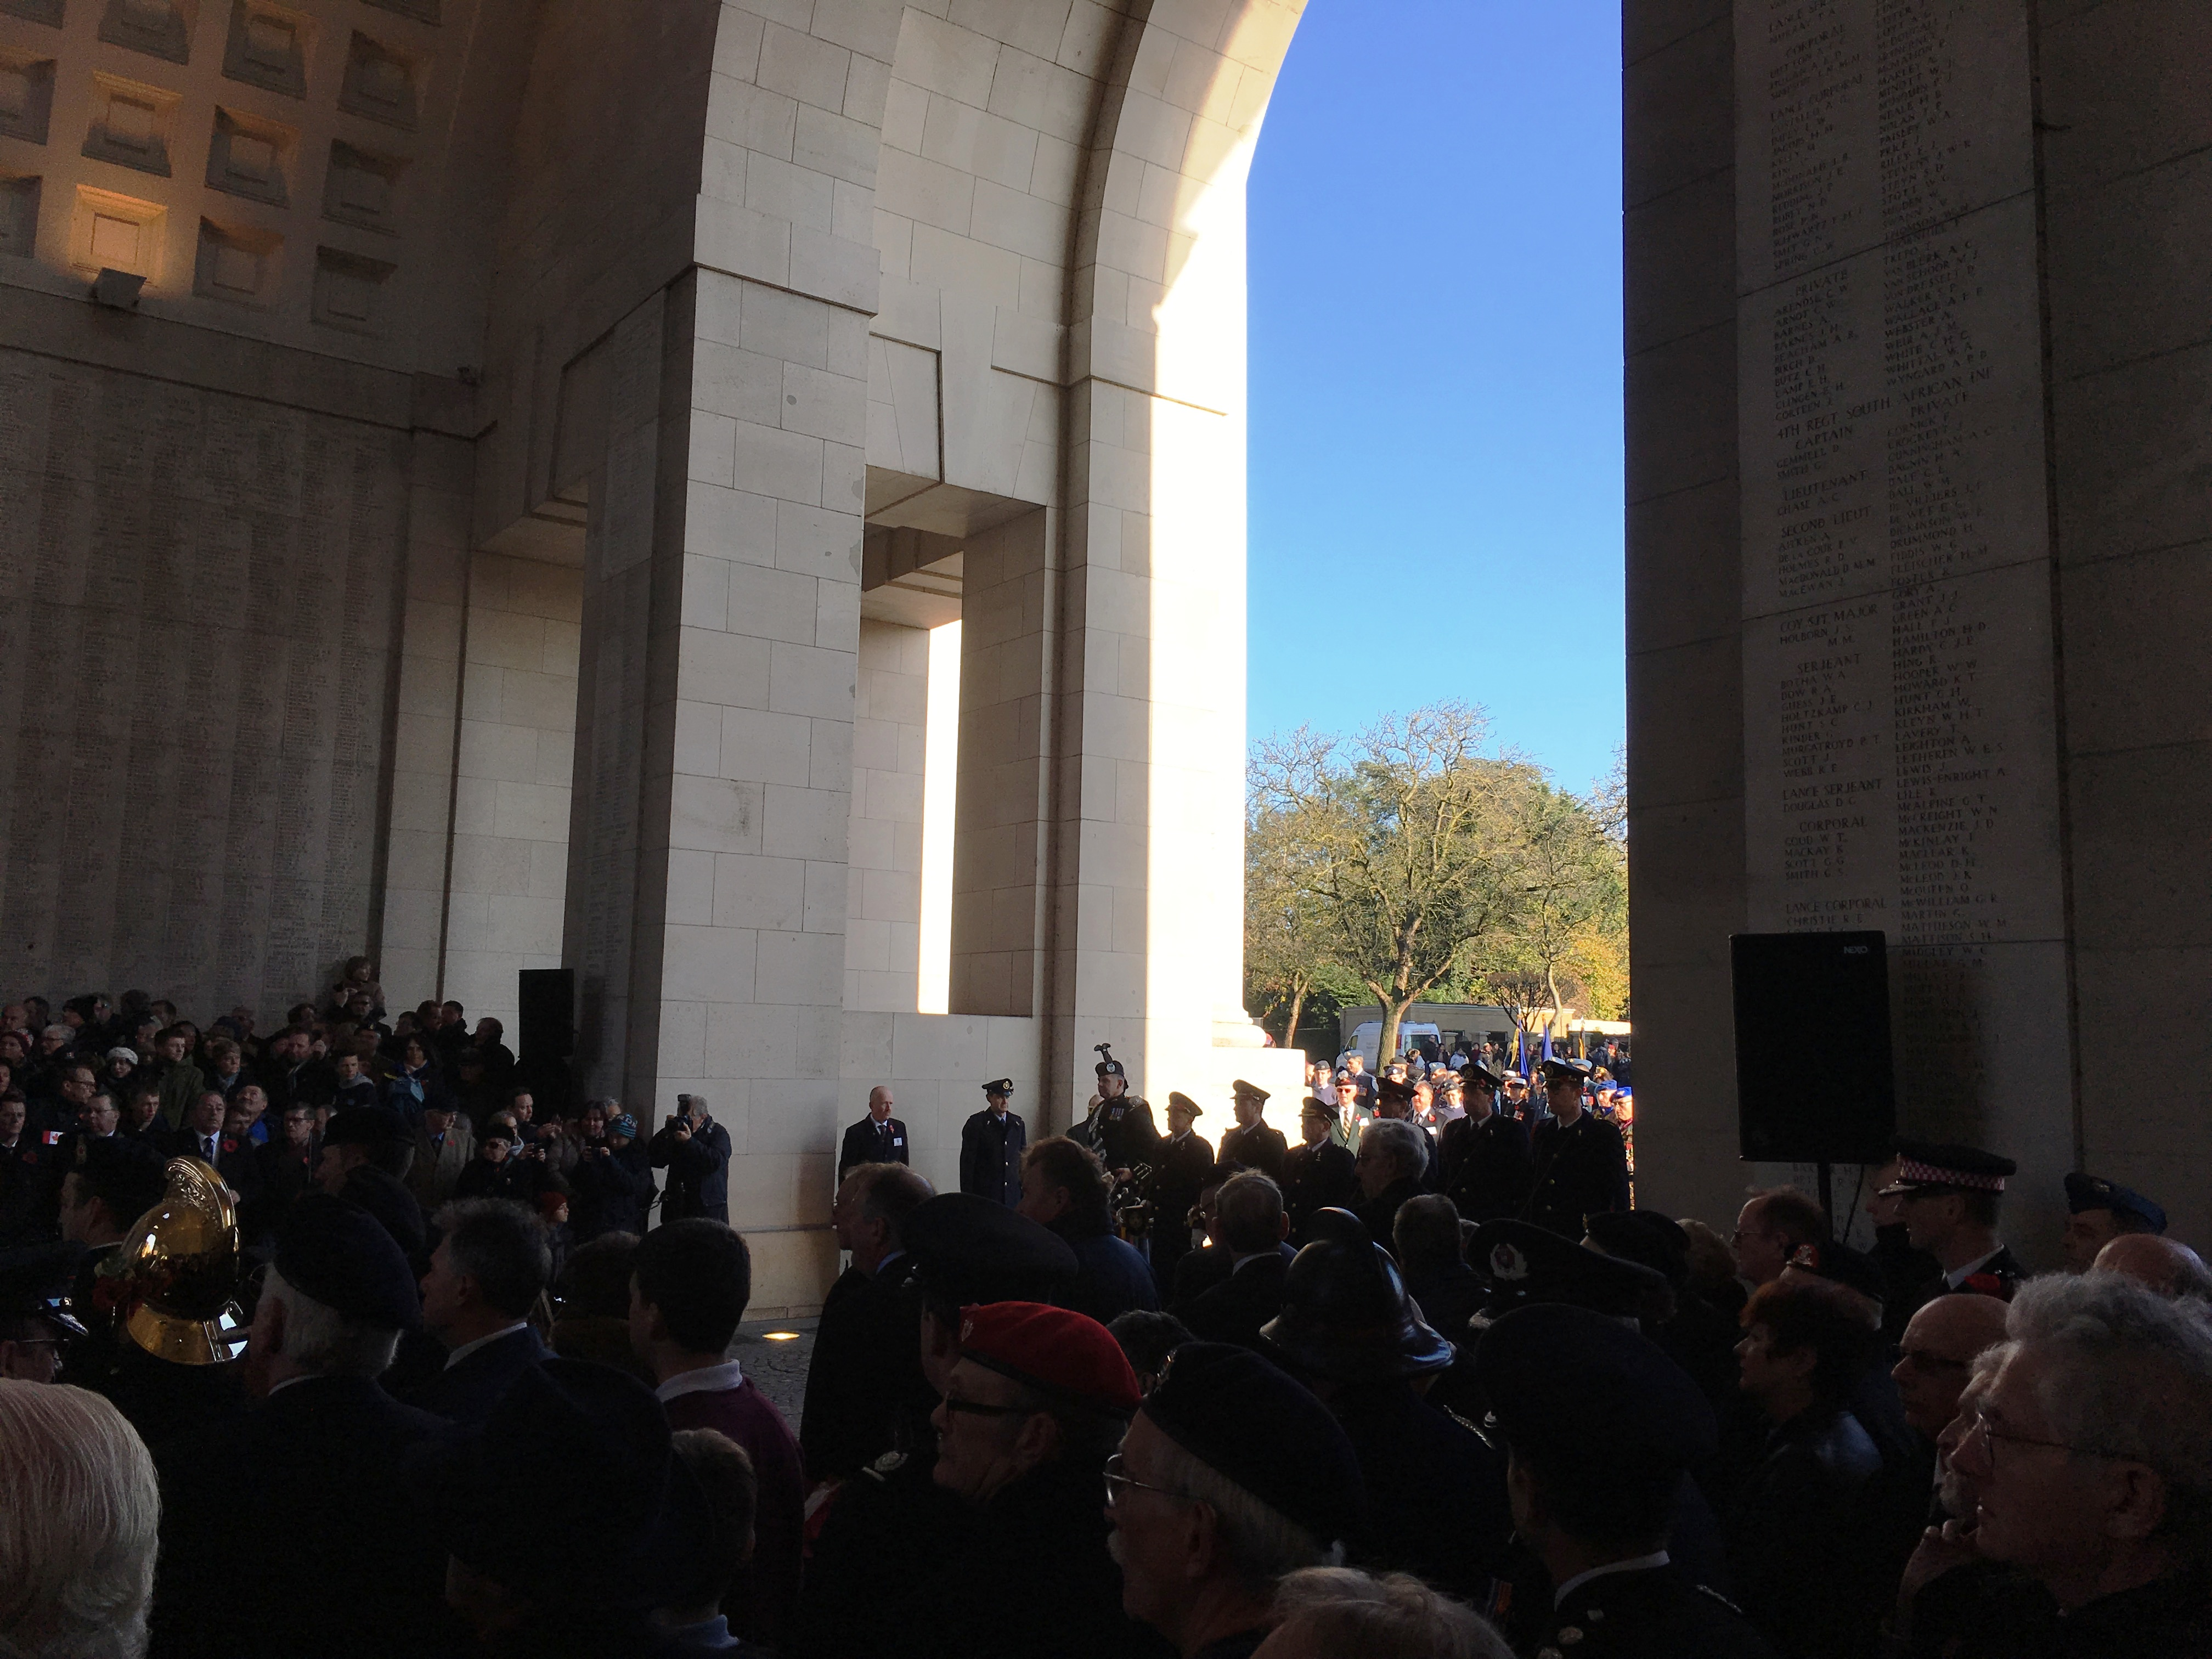 08-buglers-preparing-to-play-the-last-post-under-the-menin-gate-on-armistice-day